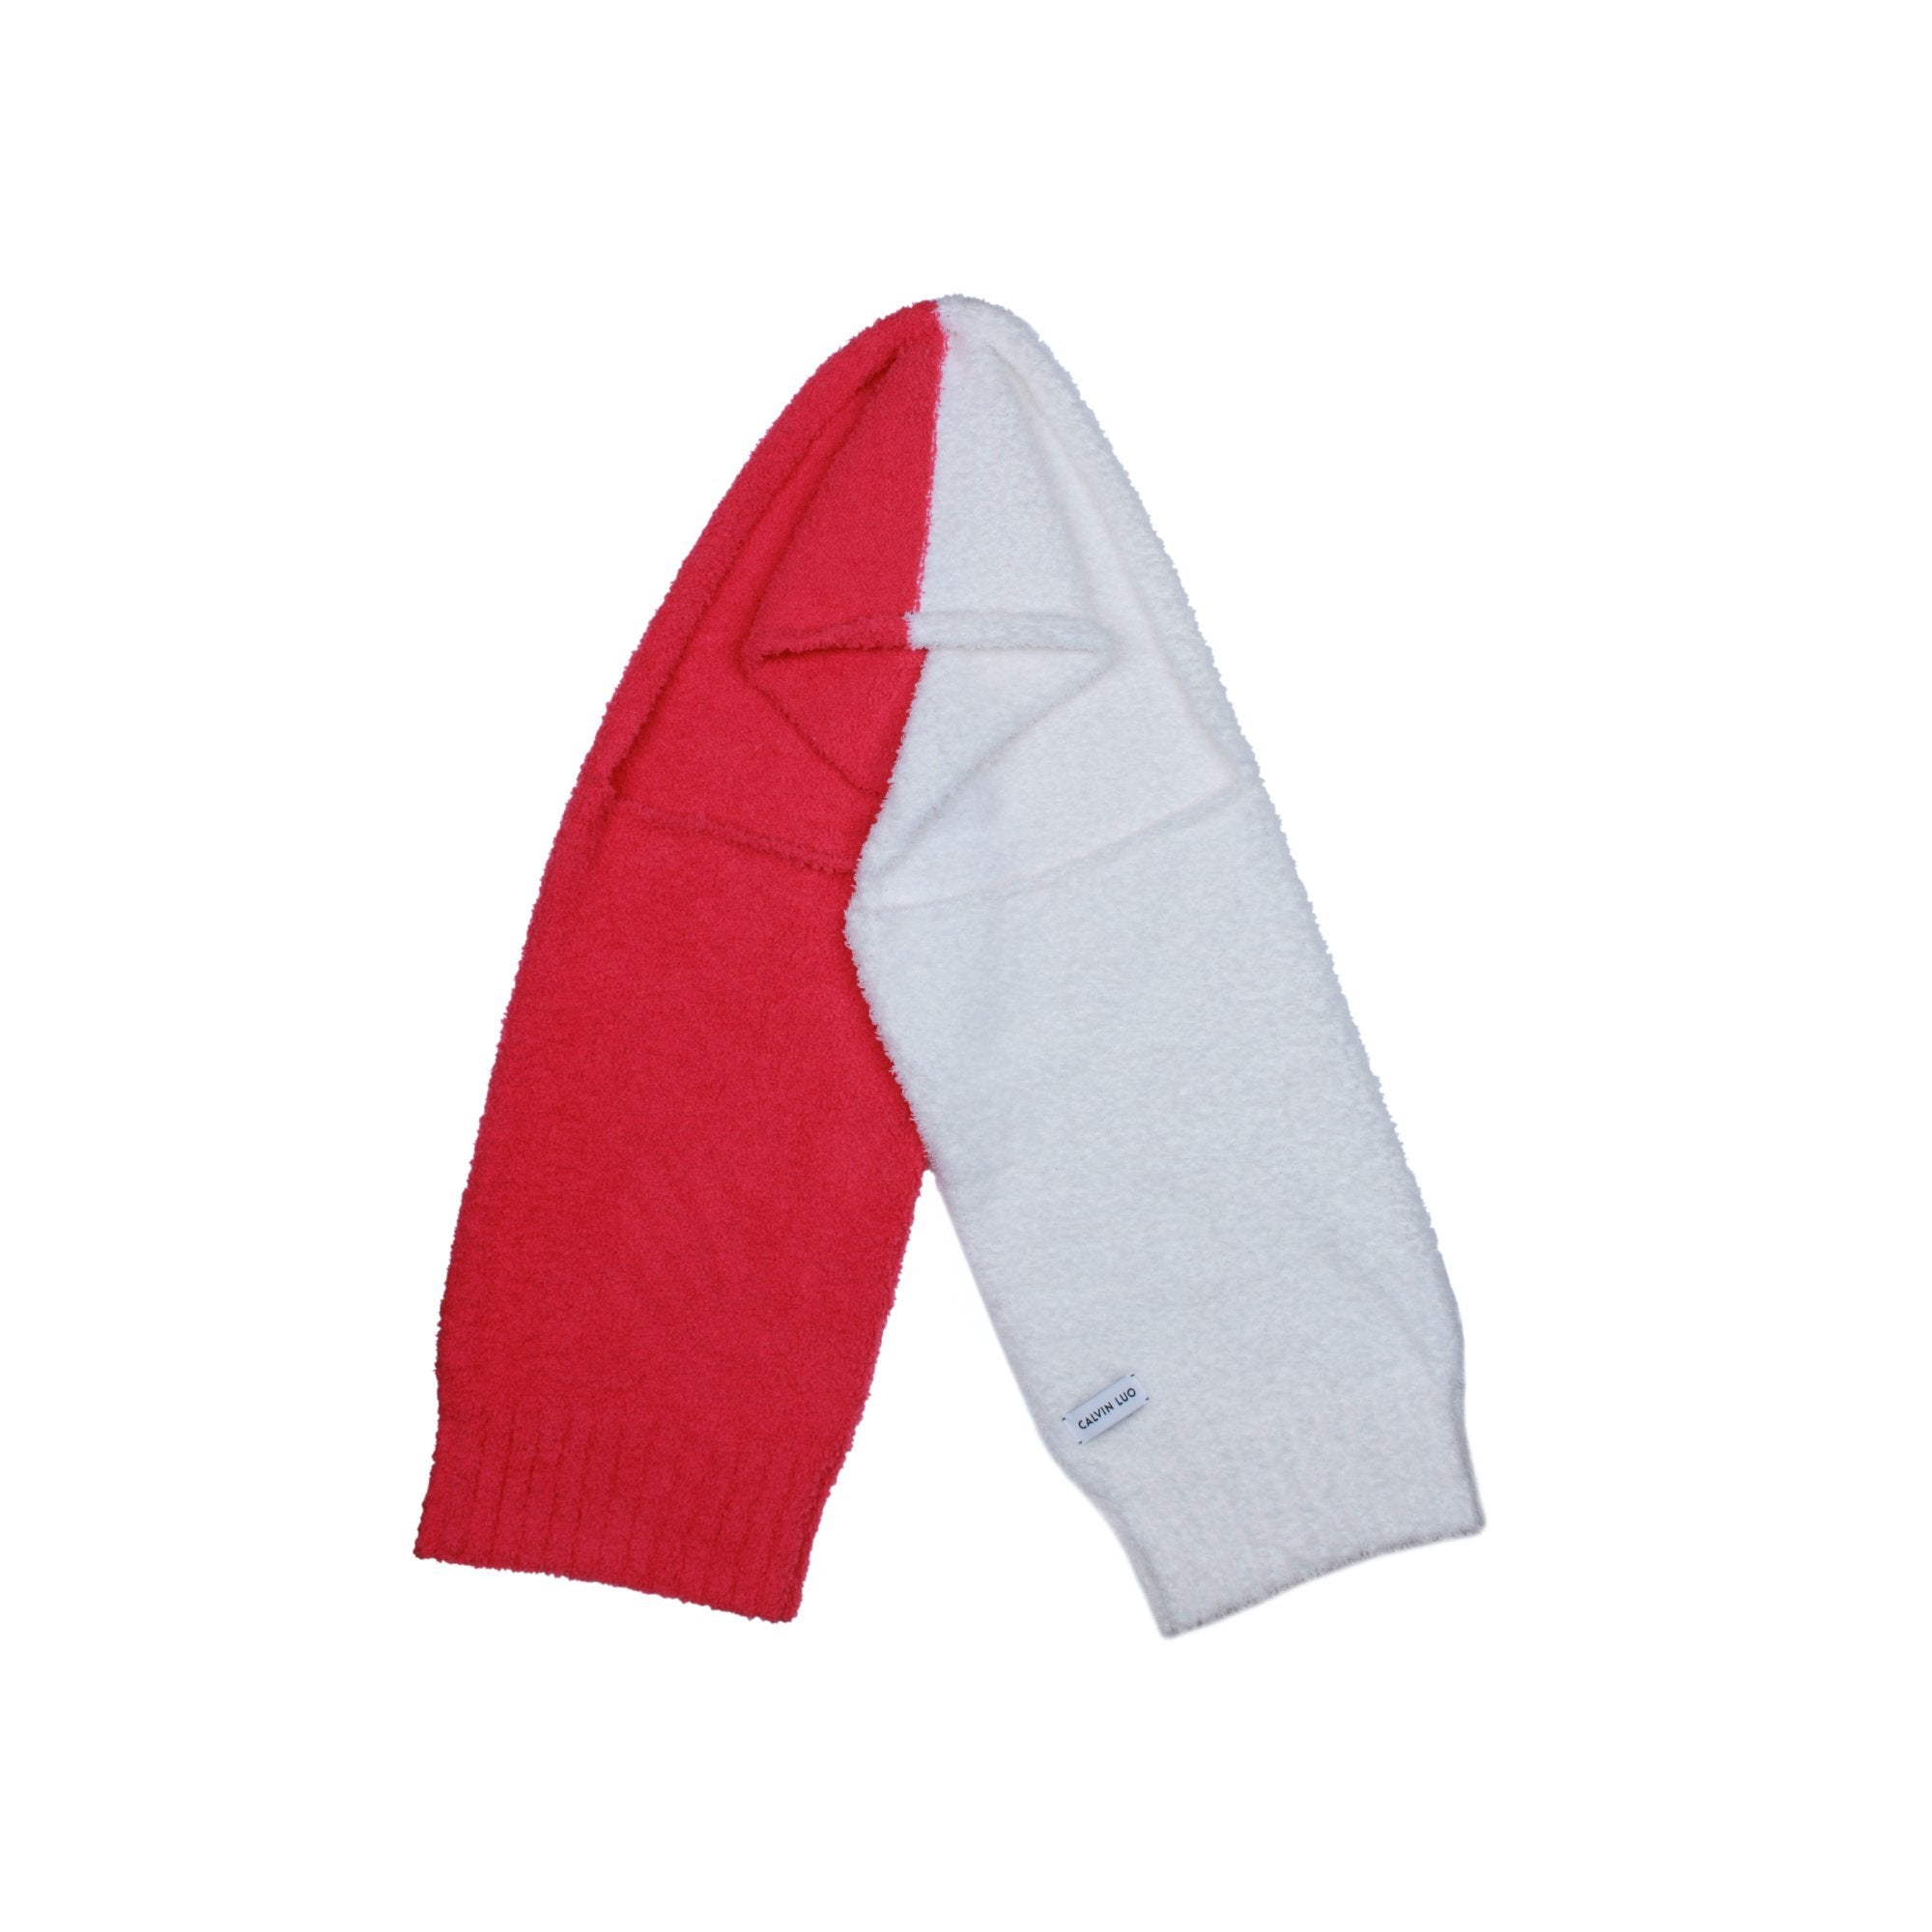 CALVIN LUO Lunar New Year Red Arm Sleeve Scarf | MADA IN CHINA